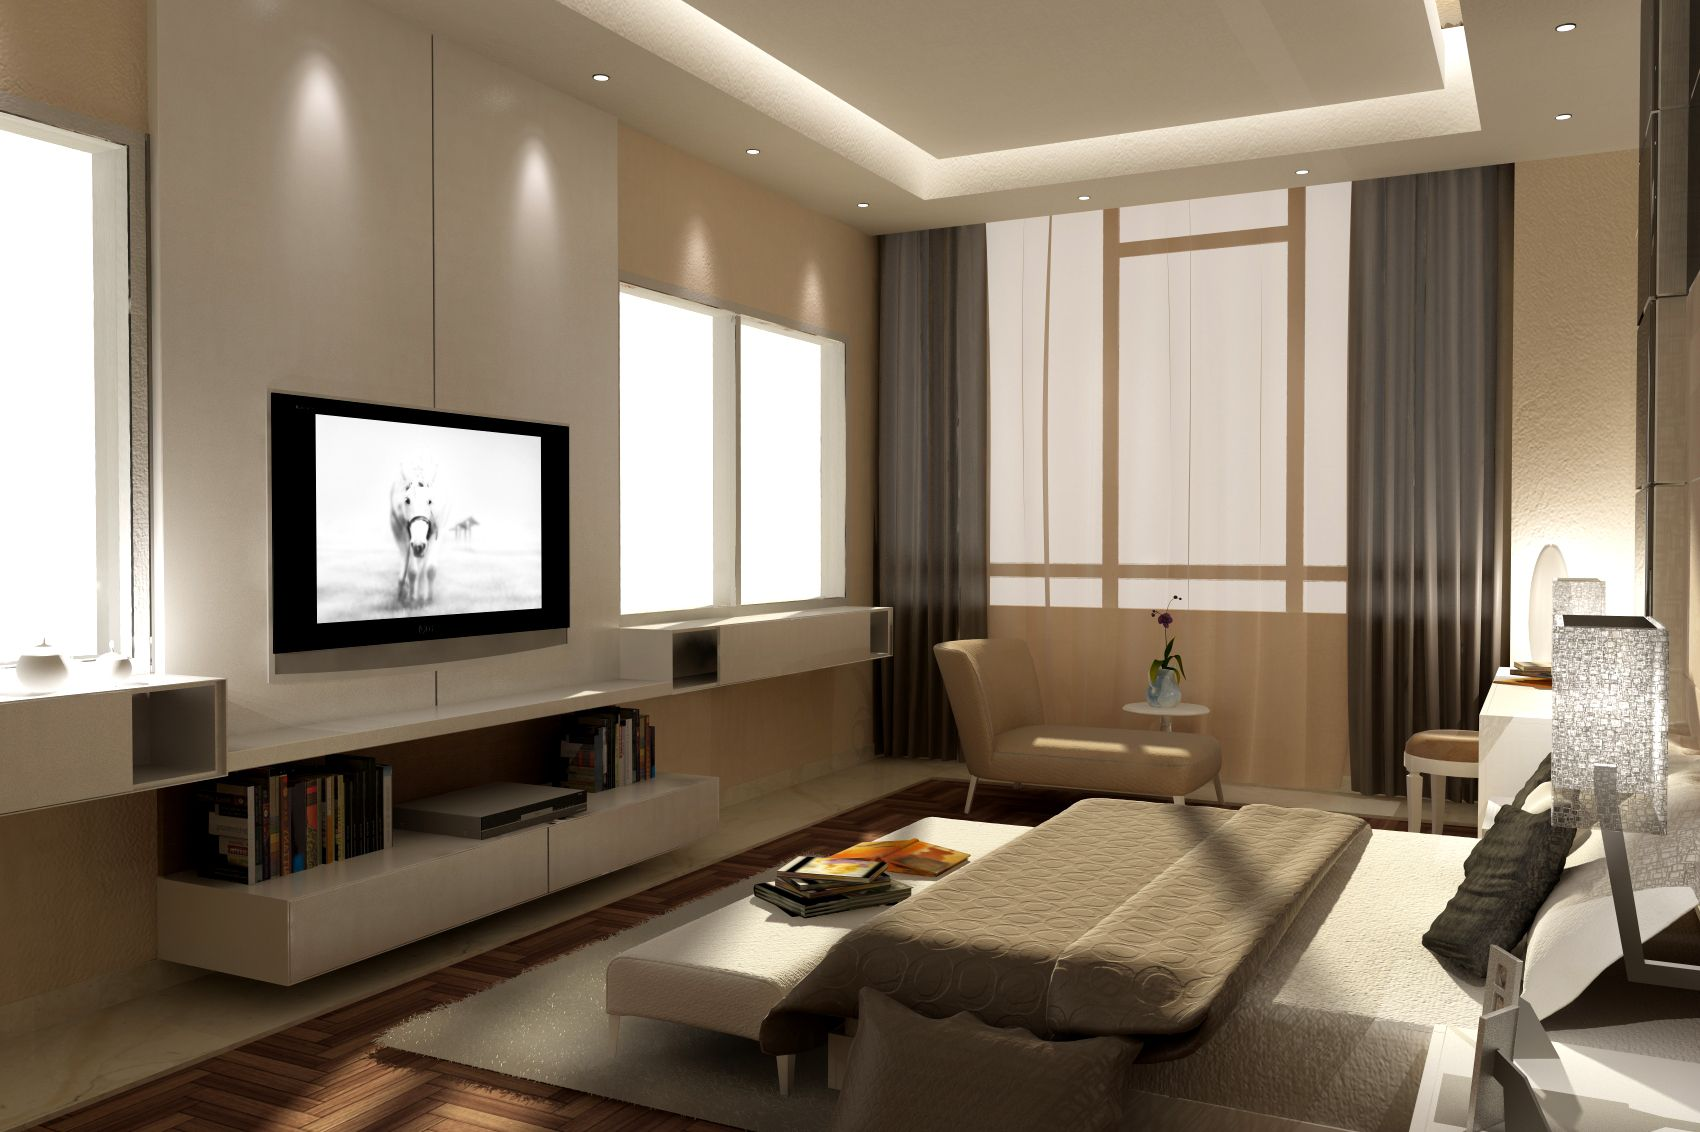 Bedroom modern bedroom interior design 3d max 3d for Modern interior designs for bedrooms